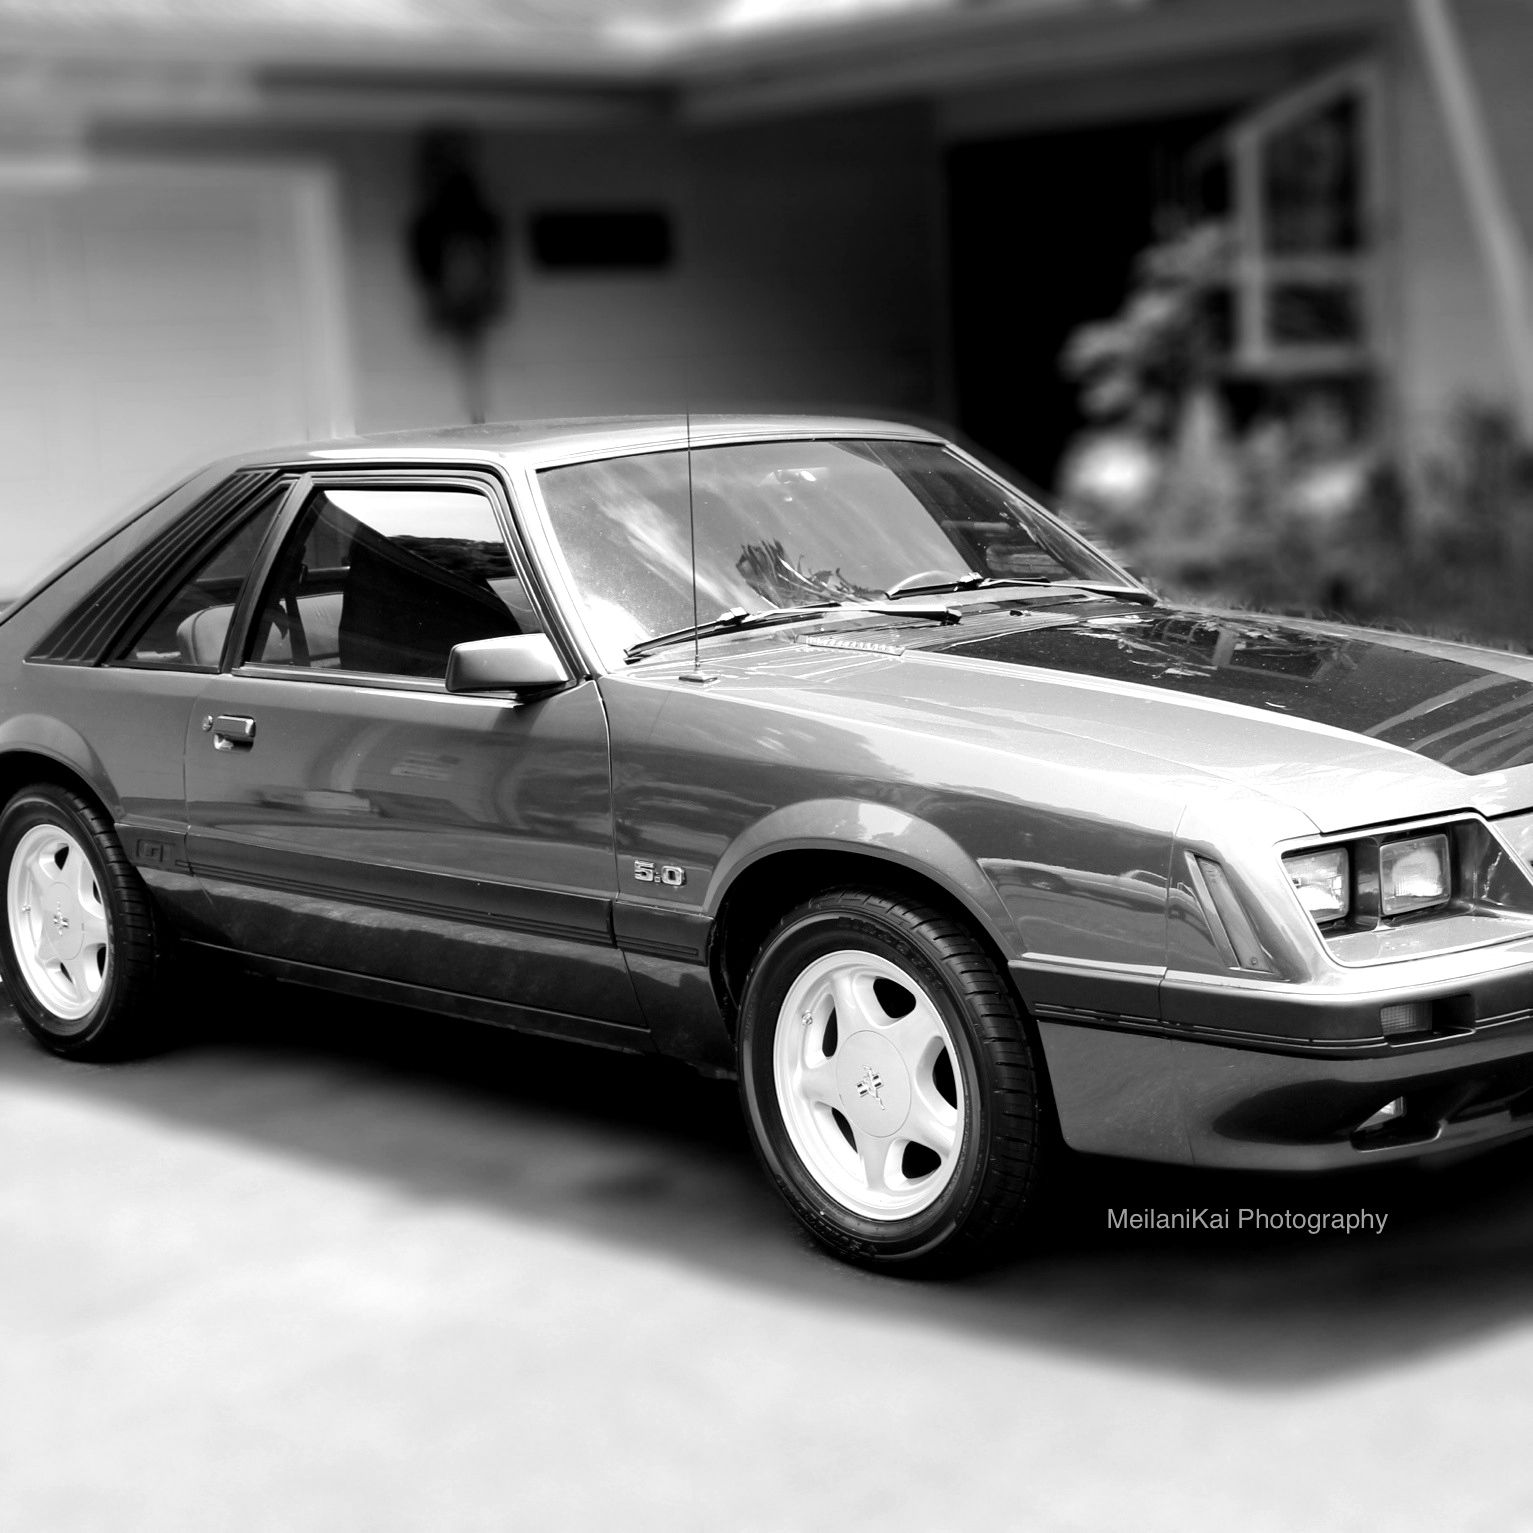 My Silver Pepper Grey Black 1986 Ford Mustang Gt 5 0 Mustang 1986mustang Ford Cars Ford Mustang Gt Classic Cars Muscle Mustang